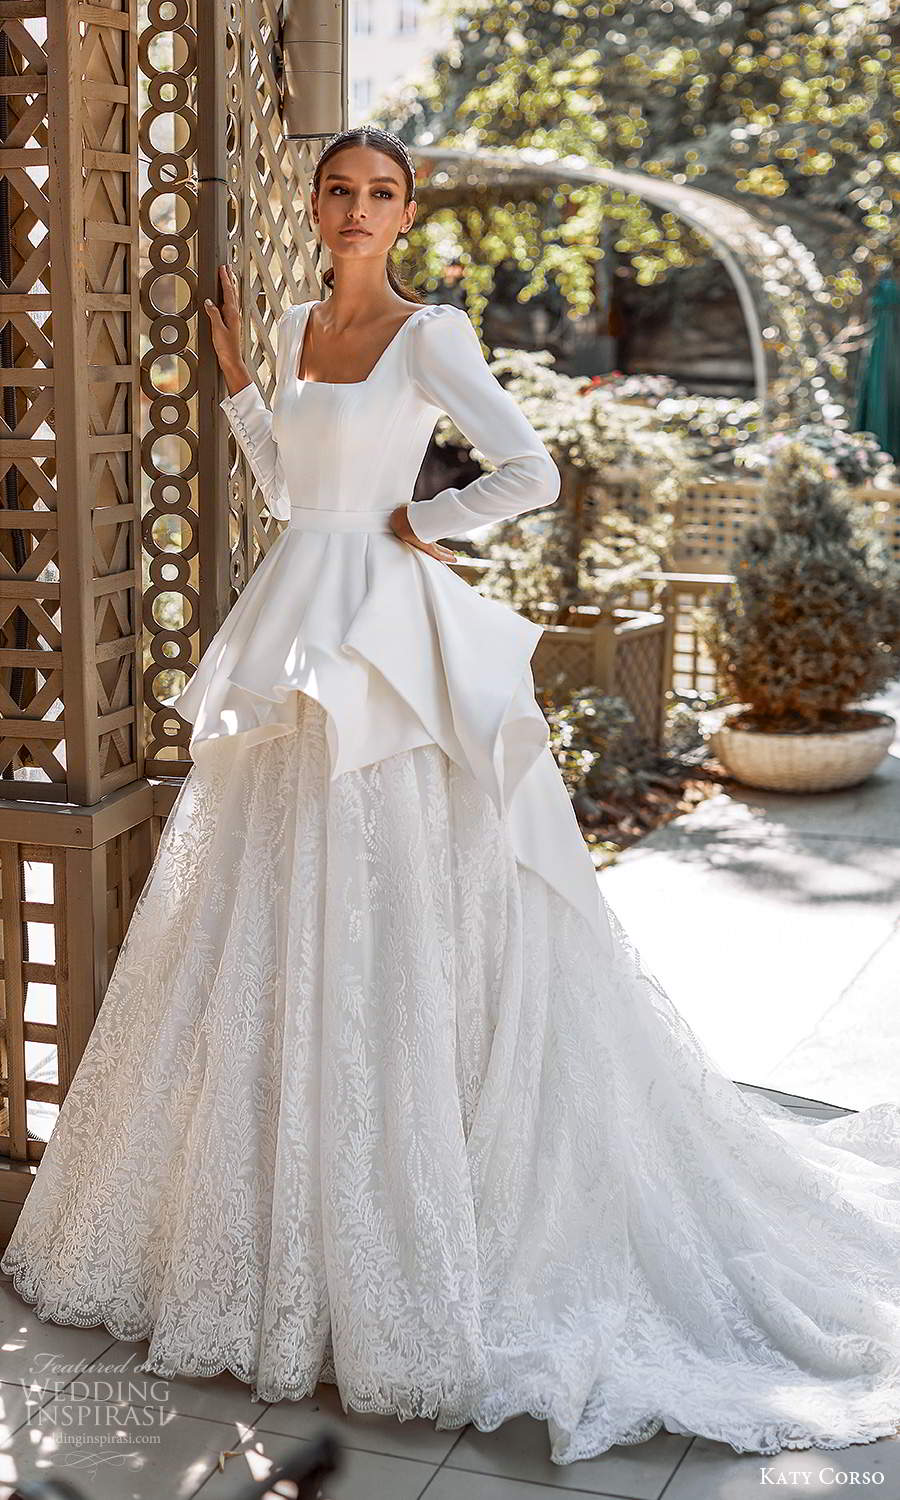 katy corso 2021 bridal long puff sleeves square neckline clean bodice embellished lace skirt peplum a line ball gown wedding dress chapel train (5) mv